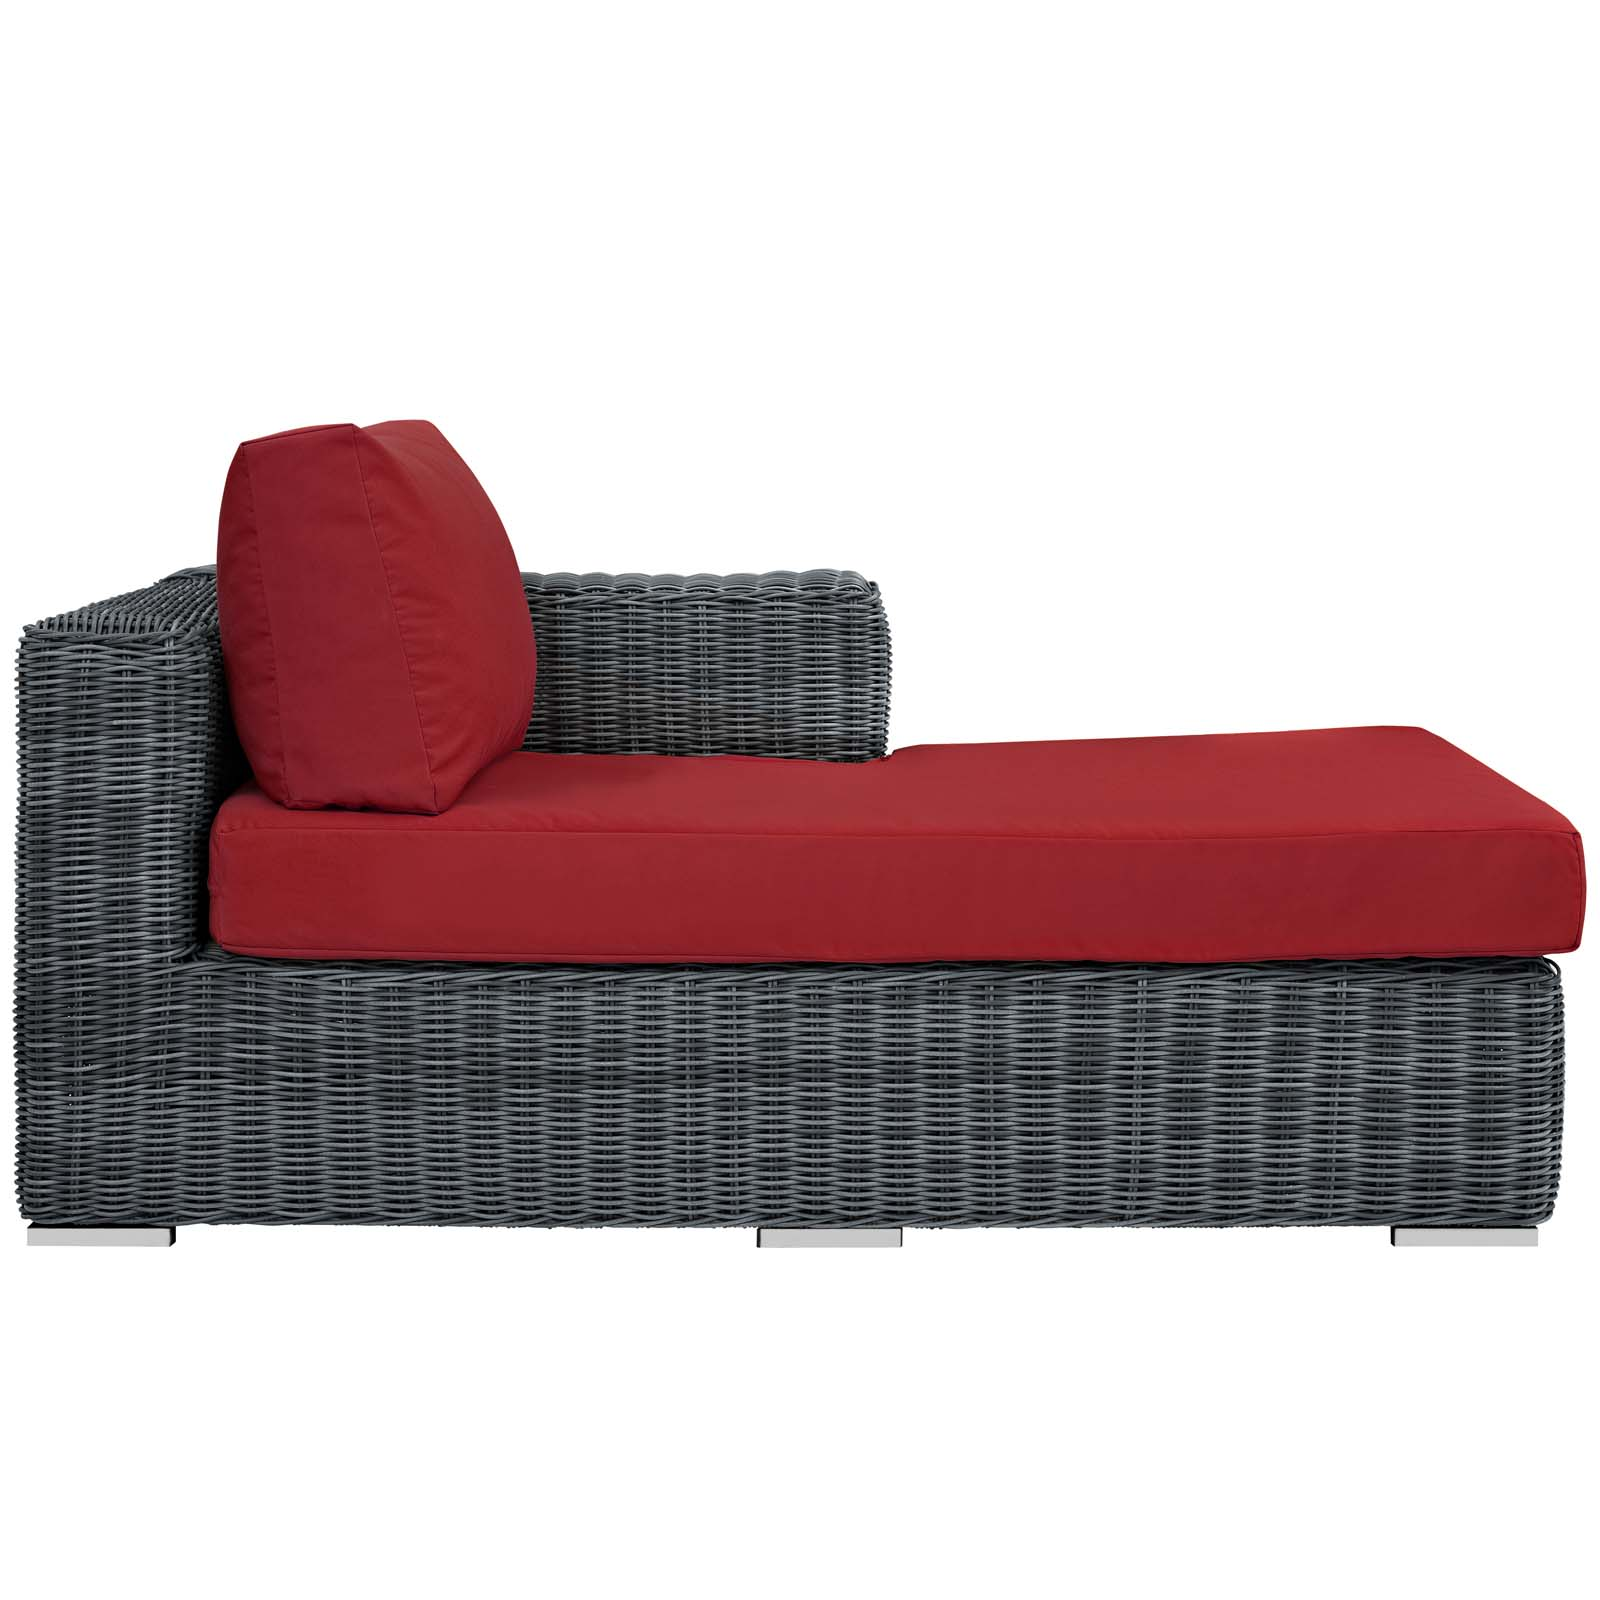 Summon Outdoor Patio Sunbrella Right Arm Chaise Canvas Red EEI-1873-GRY-RED